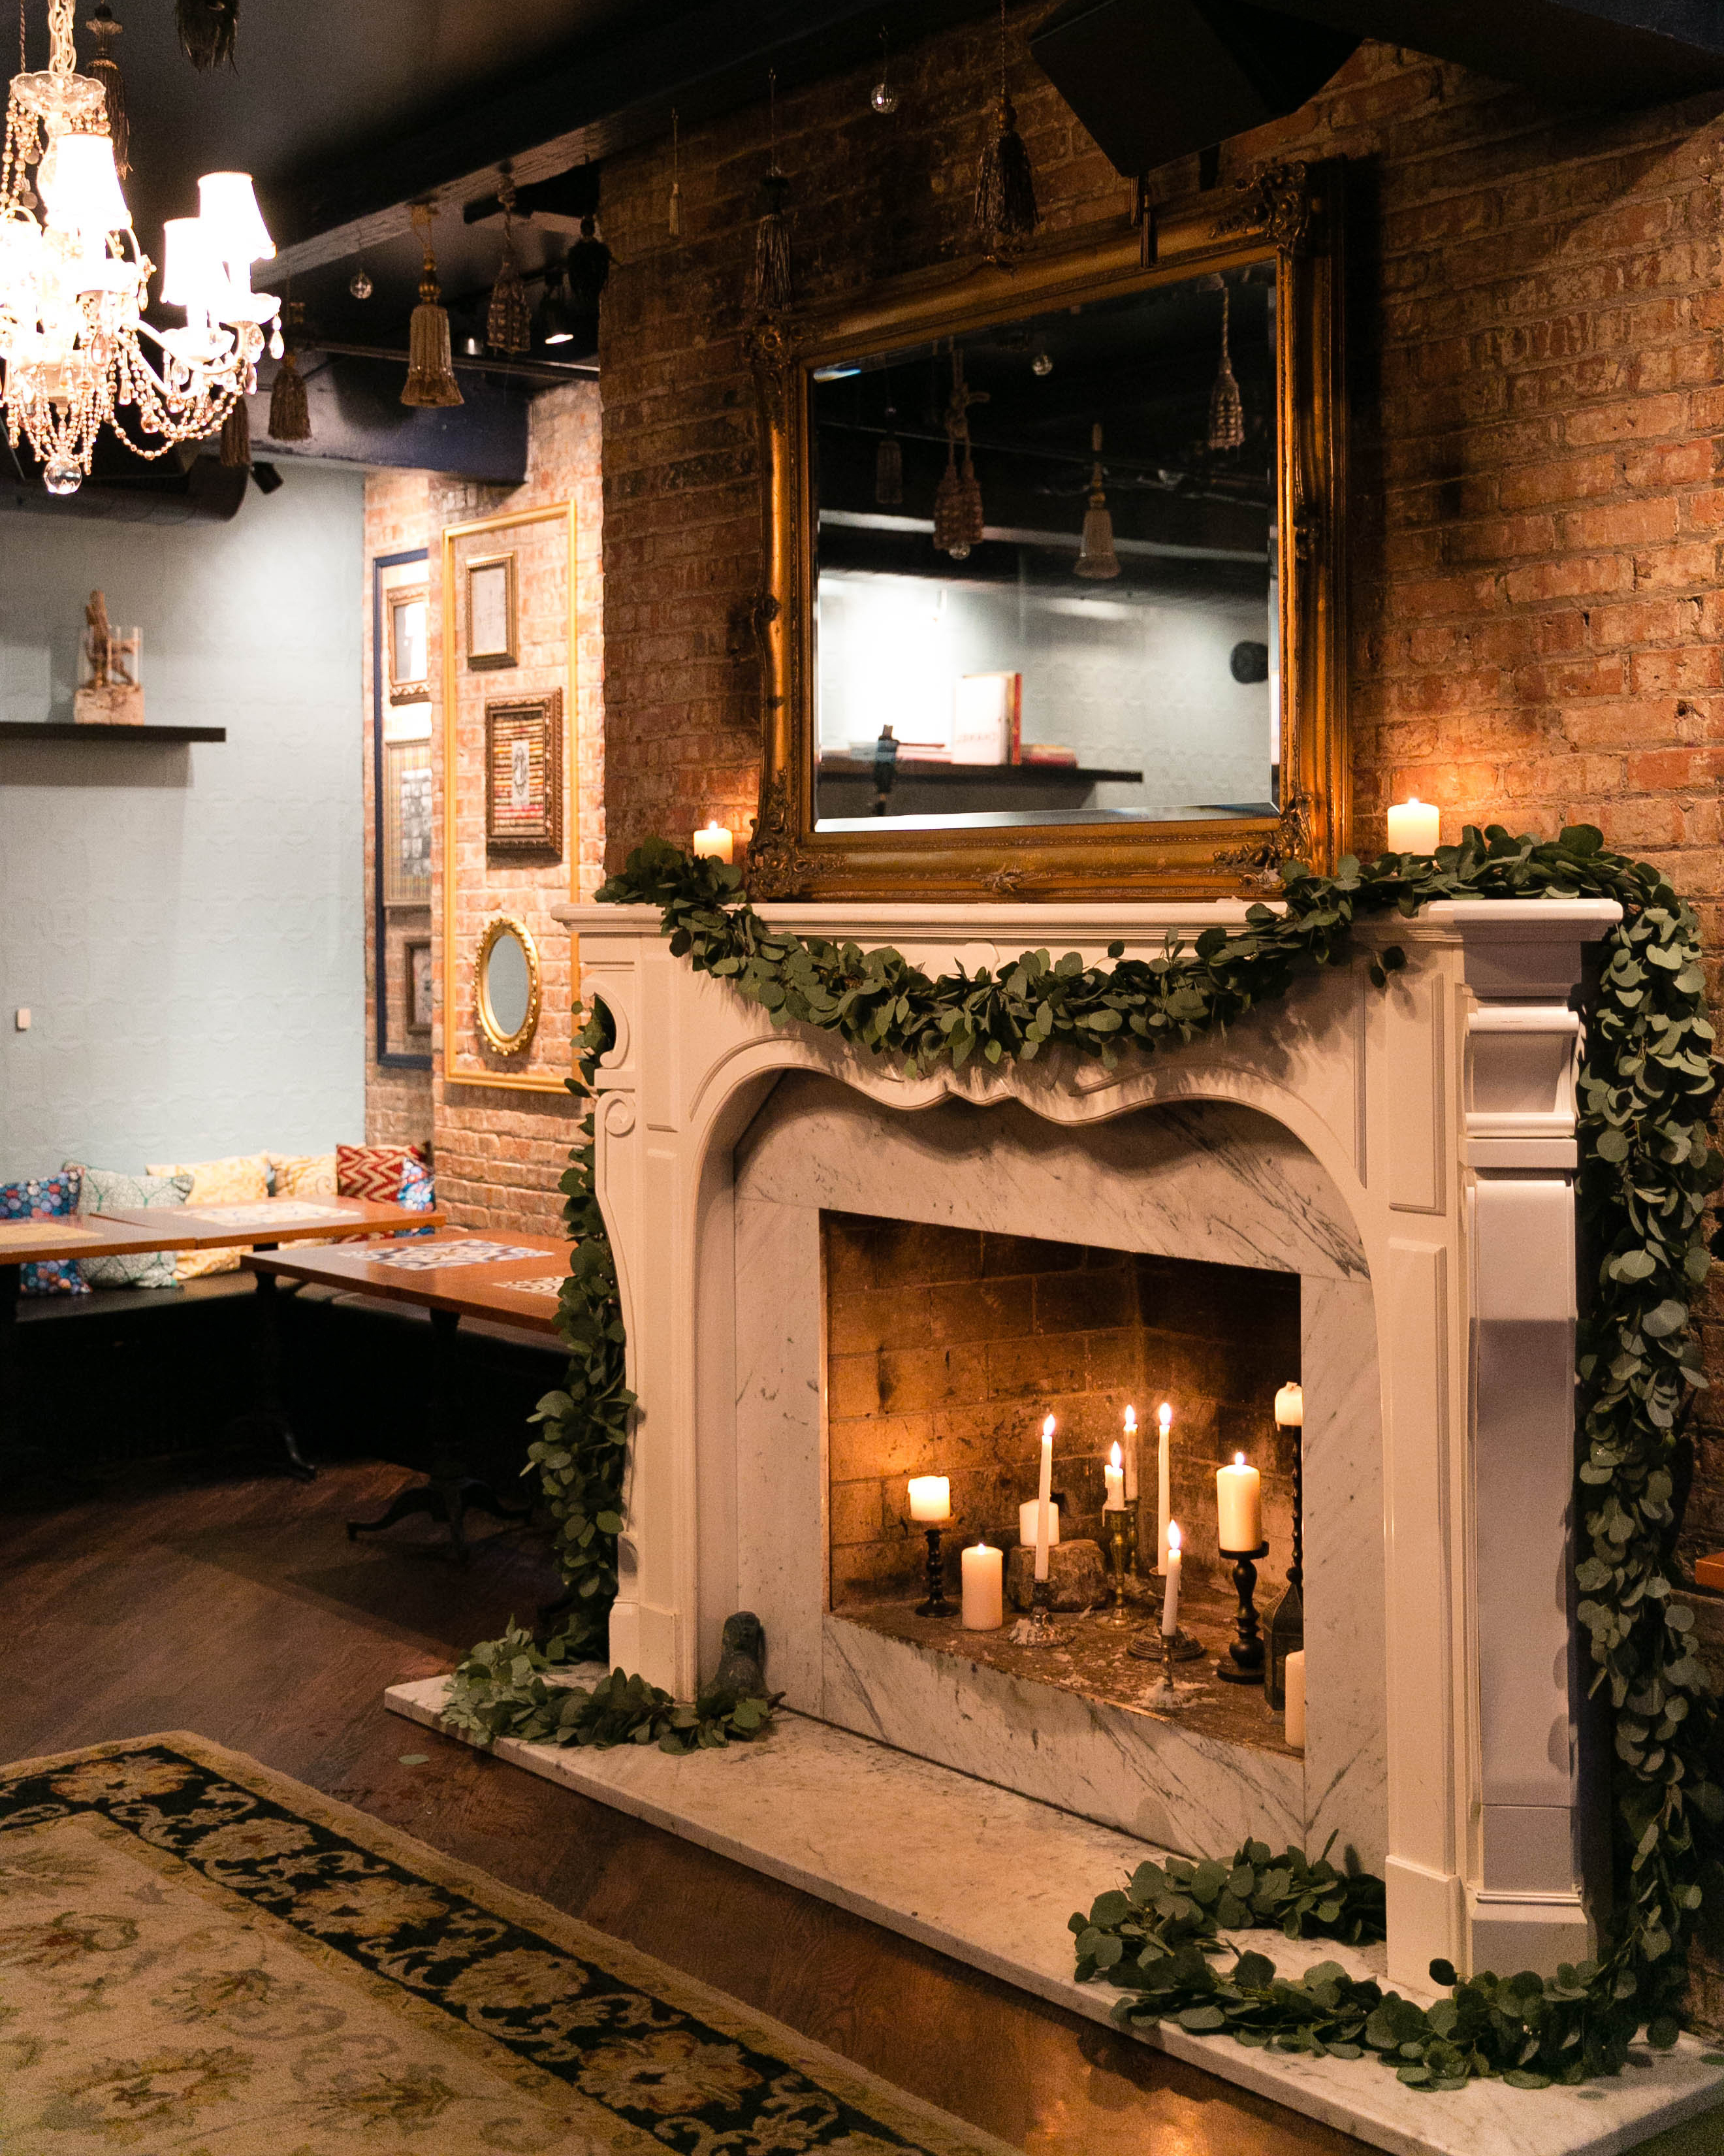 bianca-bryen-wedding-fireplace-190-s112509-0216.jpg